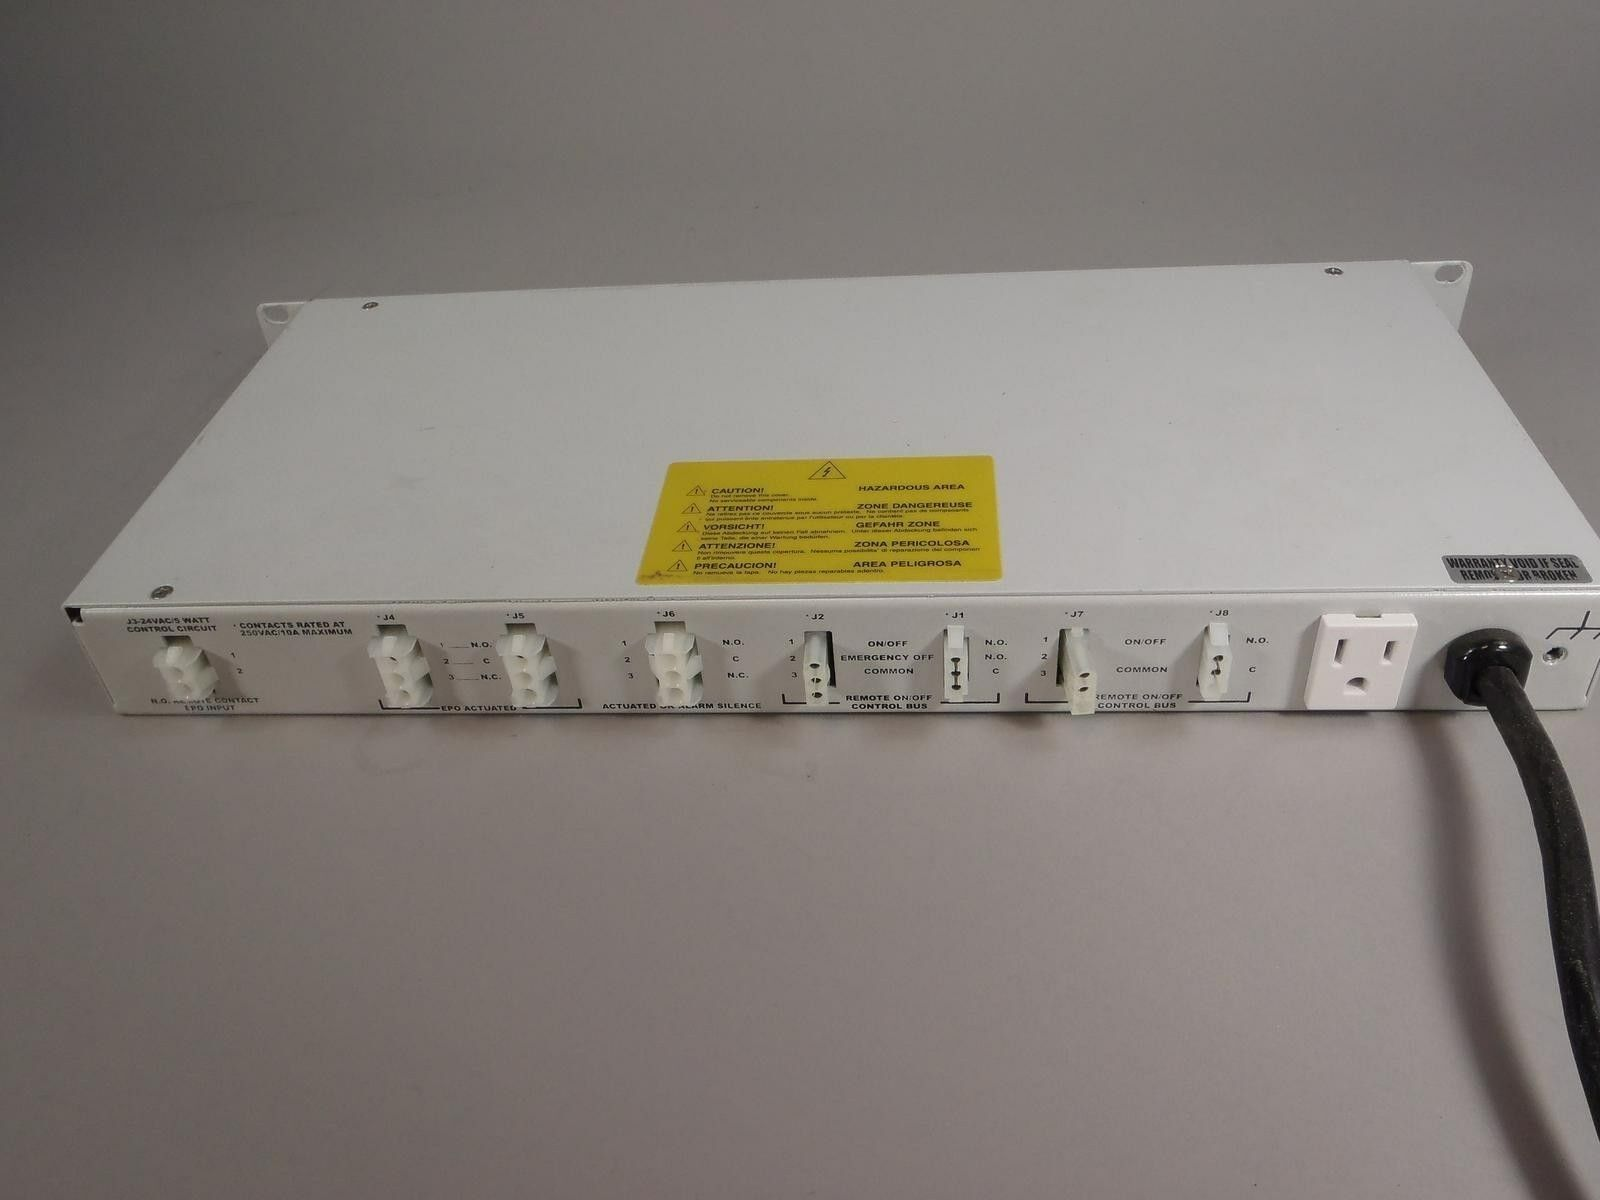 Marway Power Systems UCP 3500-001 Universal Control Panel Power Distribution